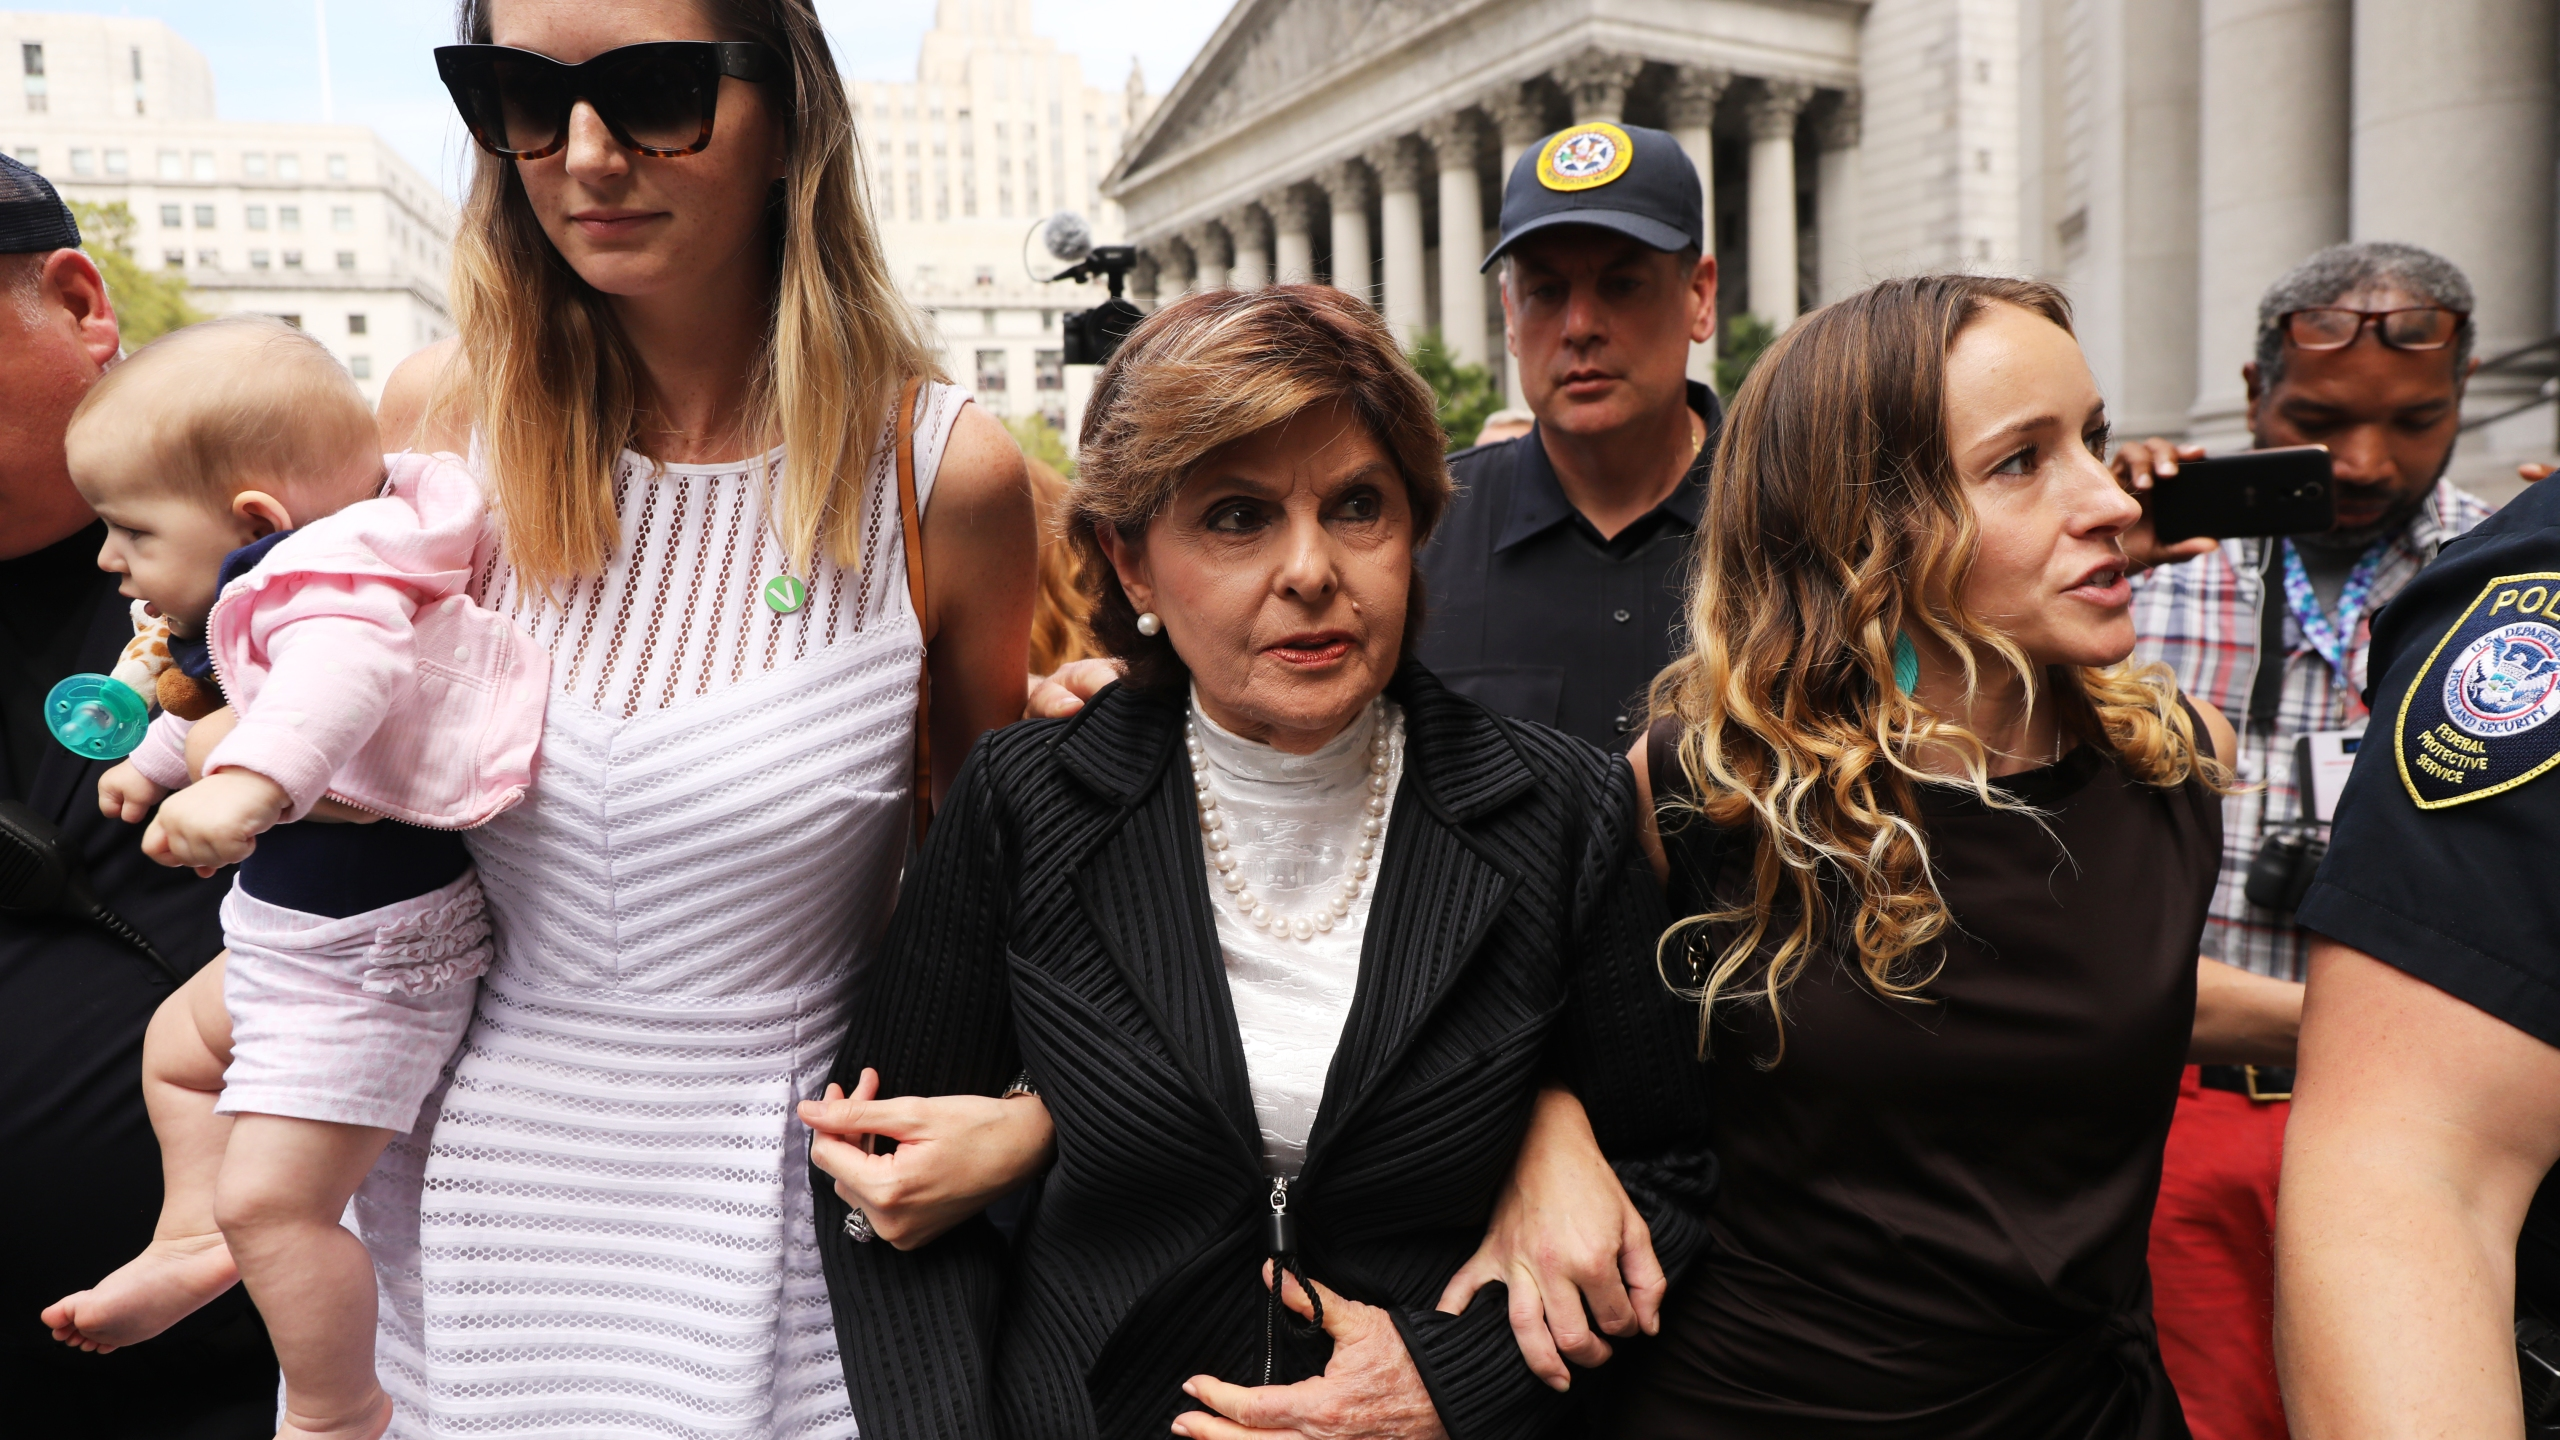 Attorney Gloria Allred, center, leaves a New York City courthouse on Aug. 27, 2019, with two women, a woman who did not wish to be identified, left, and Teala Davies, right, who have accused Jeffrey Epstein of sexually assaulting them. (Credit: Spencer Platt / Getty Images)